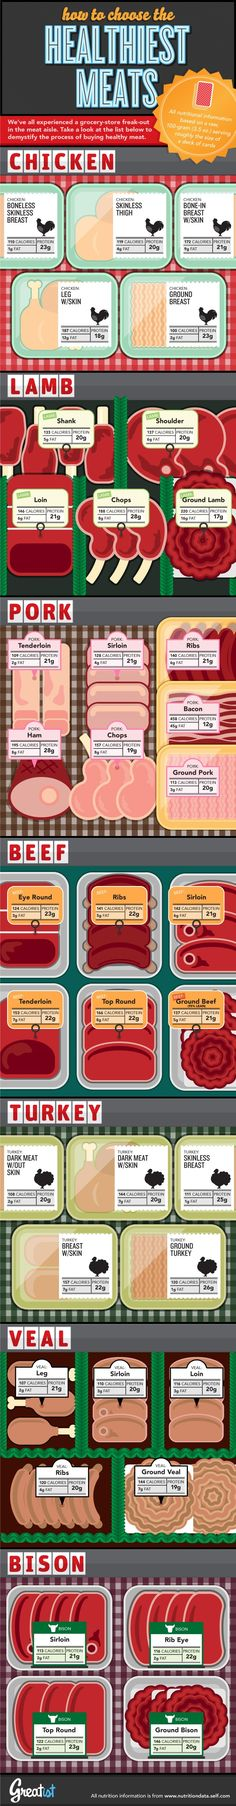 Tips on healthiest meats to buy.